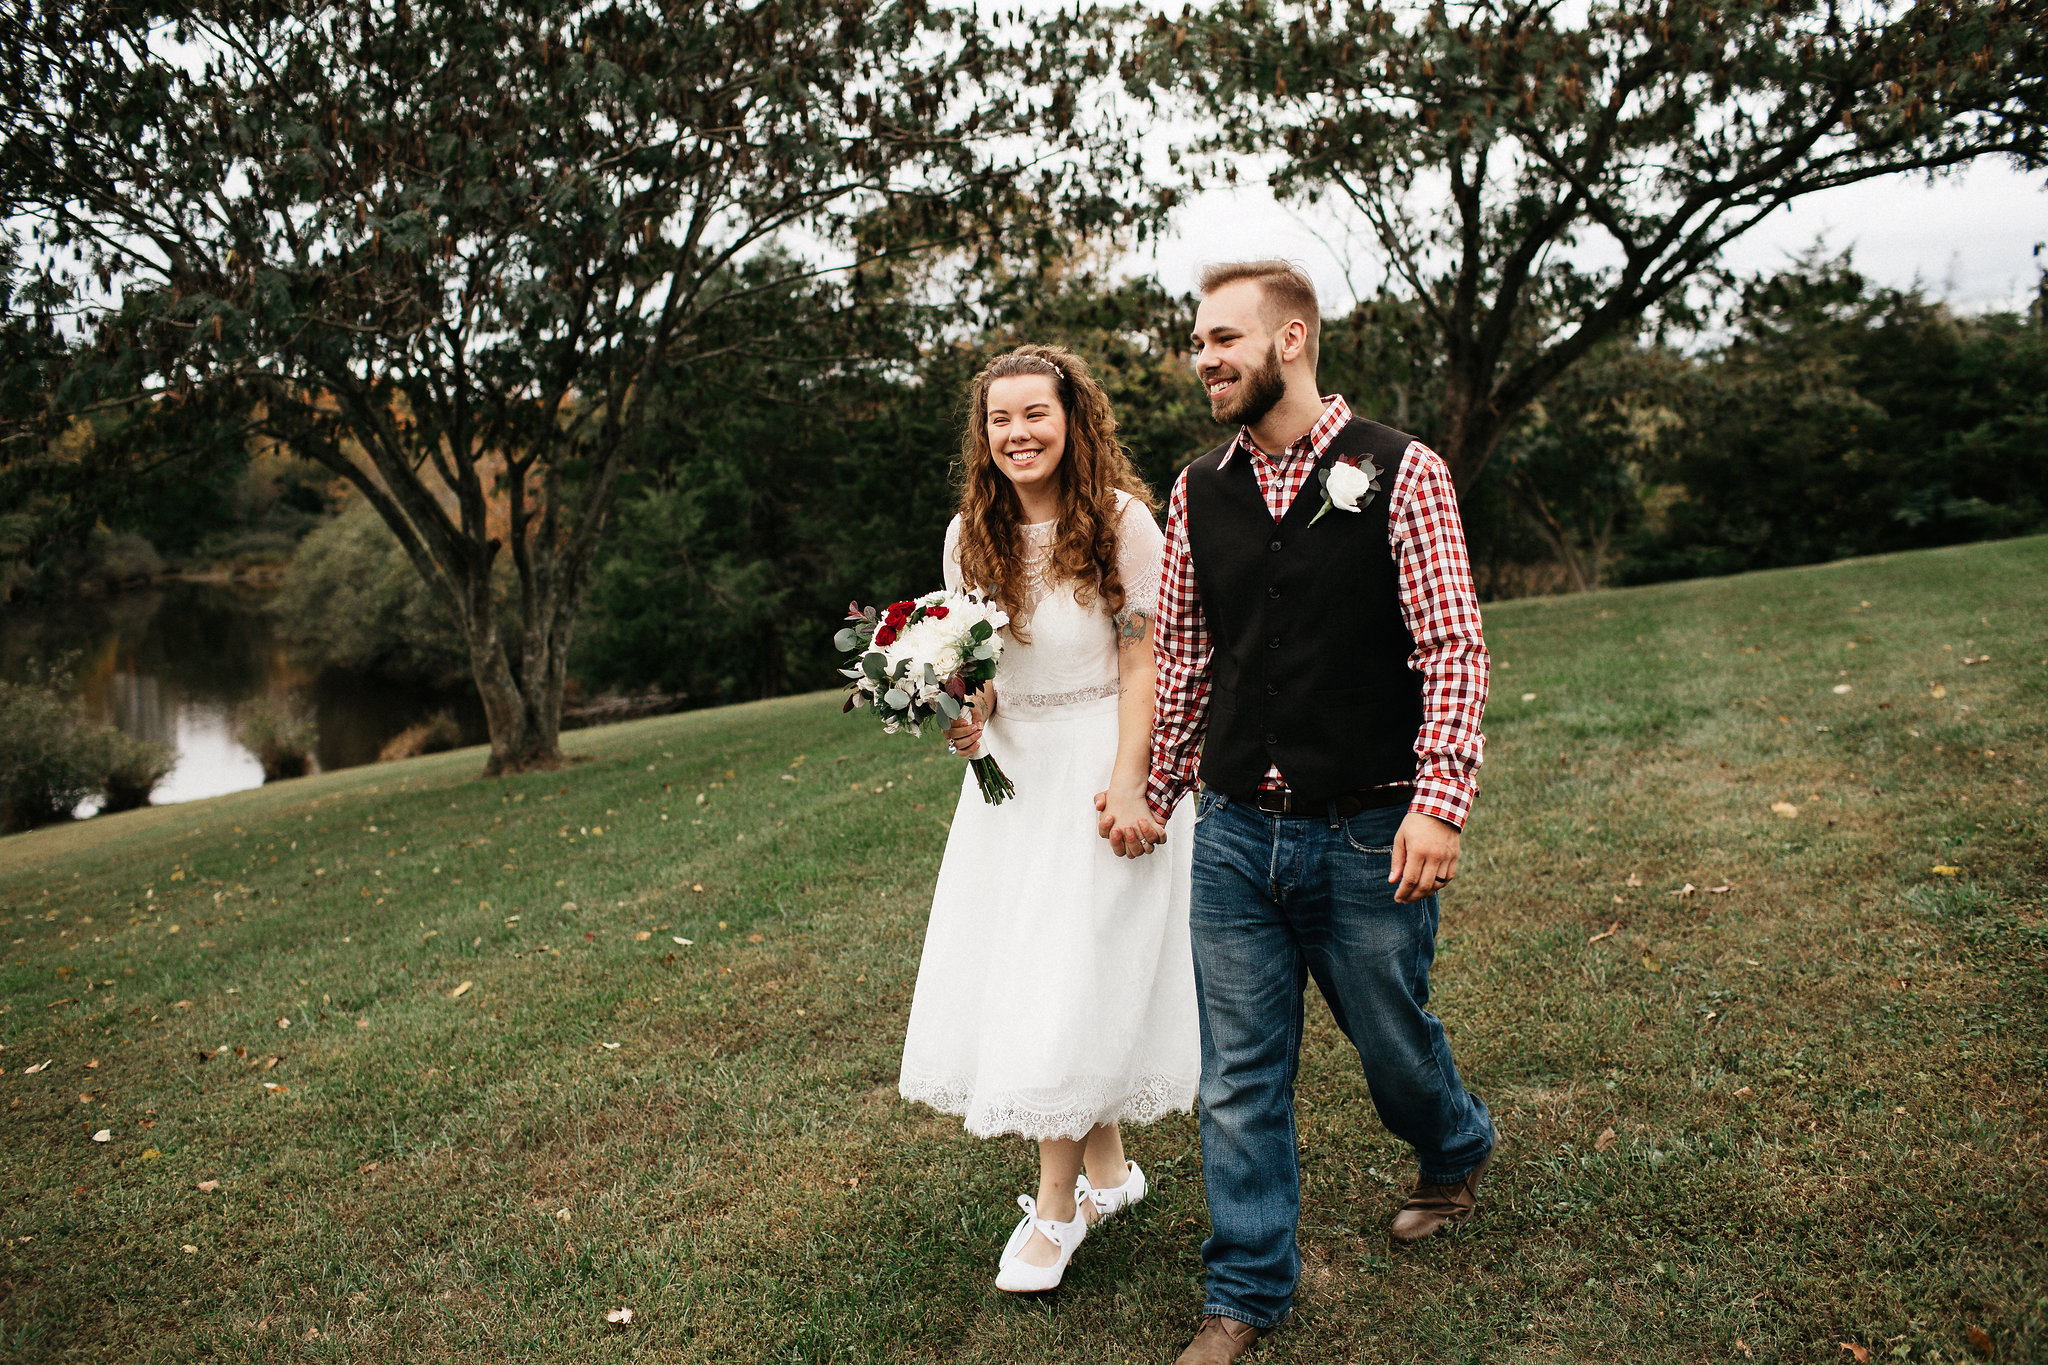 Caitlin&CodyMarried2017-11-03at19.19.39PM56.jpg